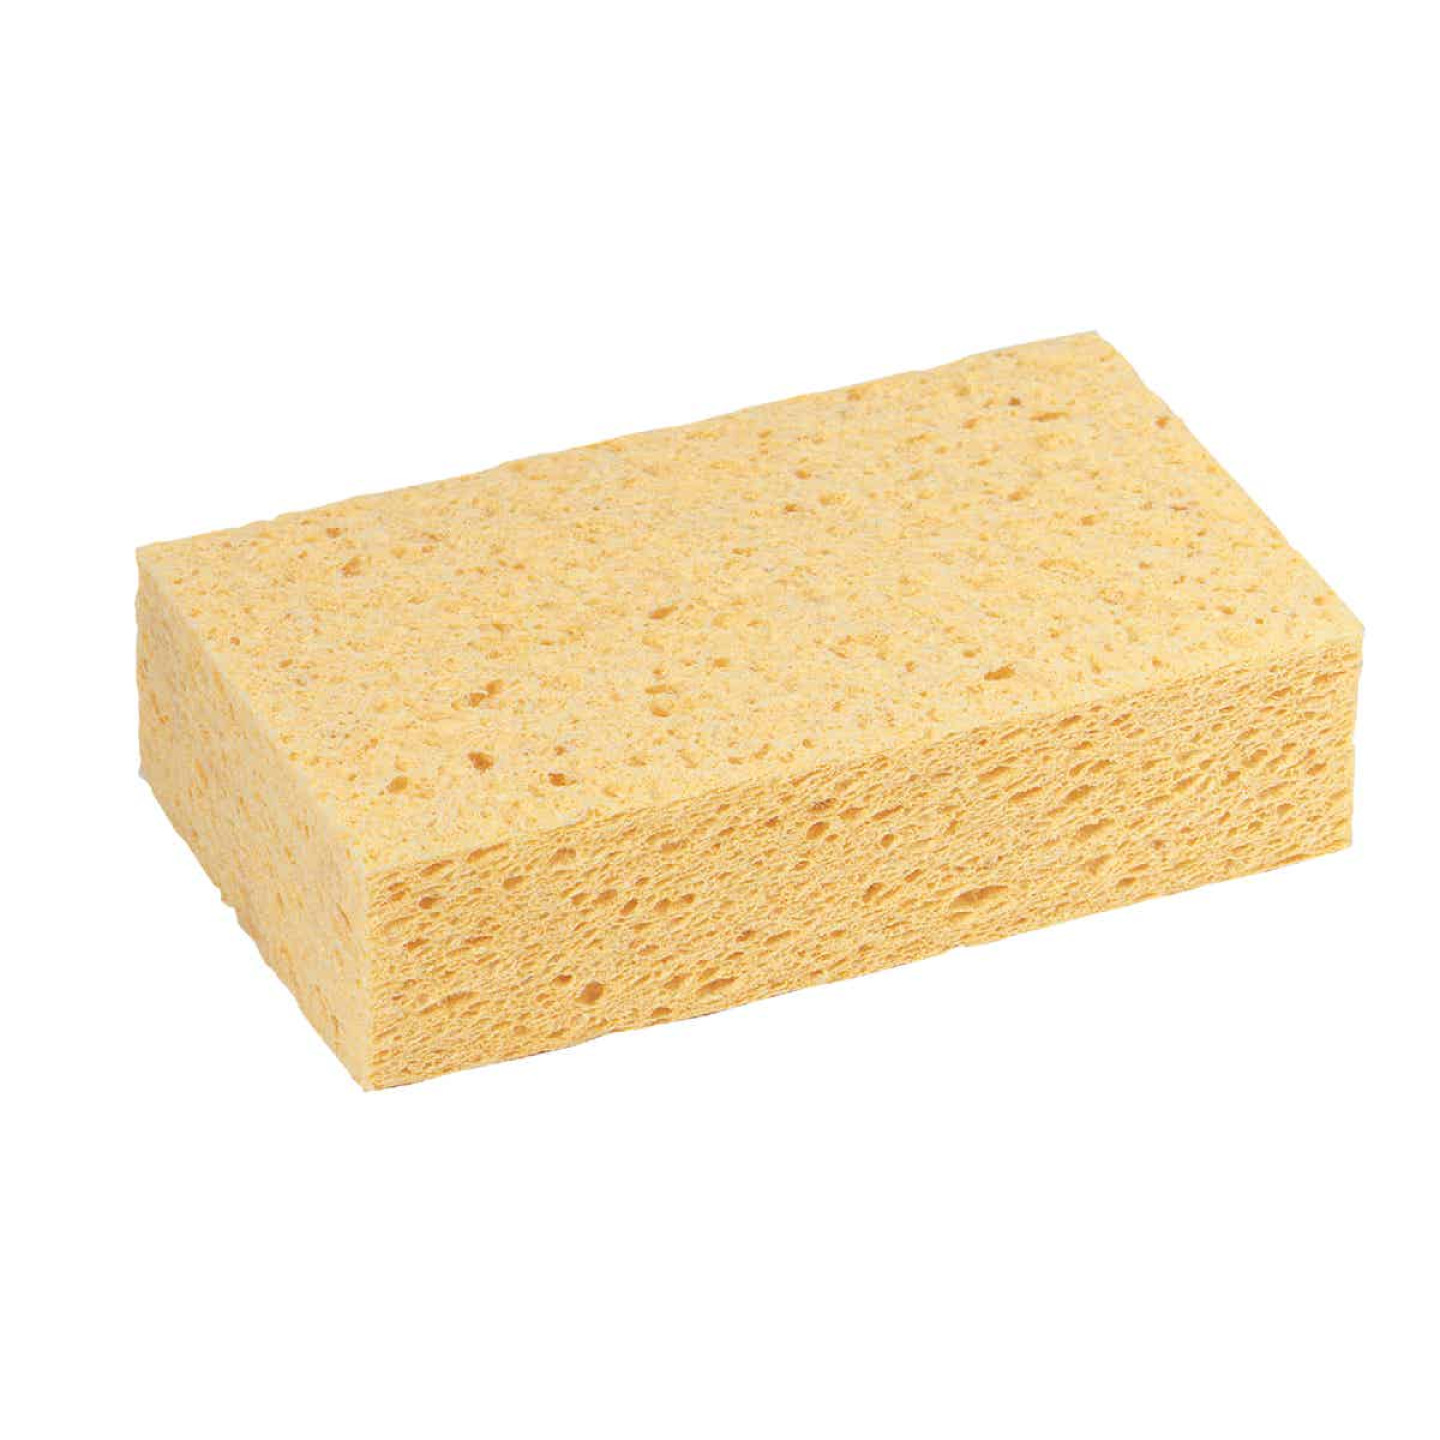 3M 7.5 In. x 4.3 In. Yellow Sponge Image 1